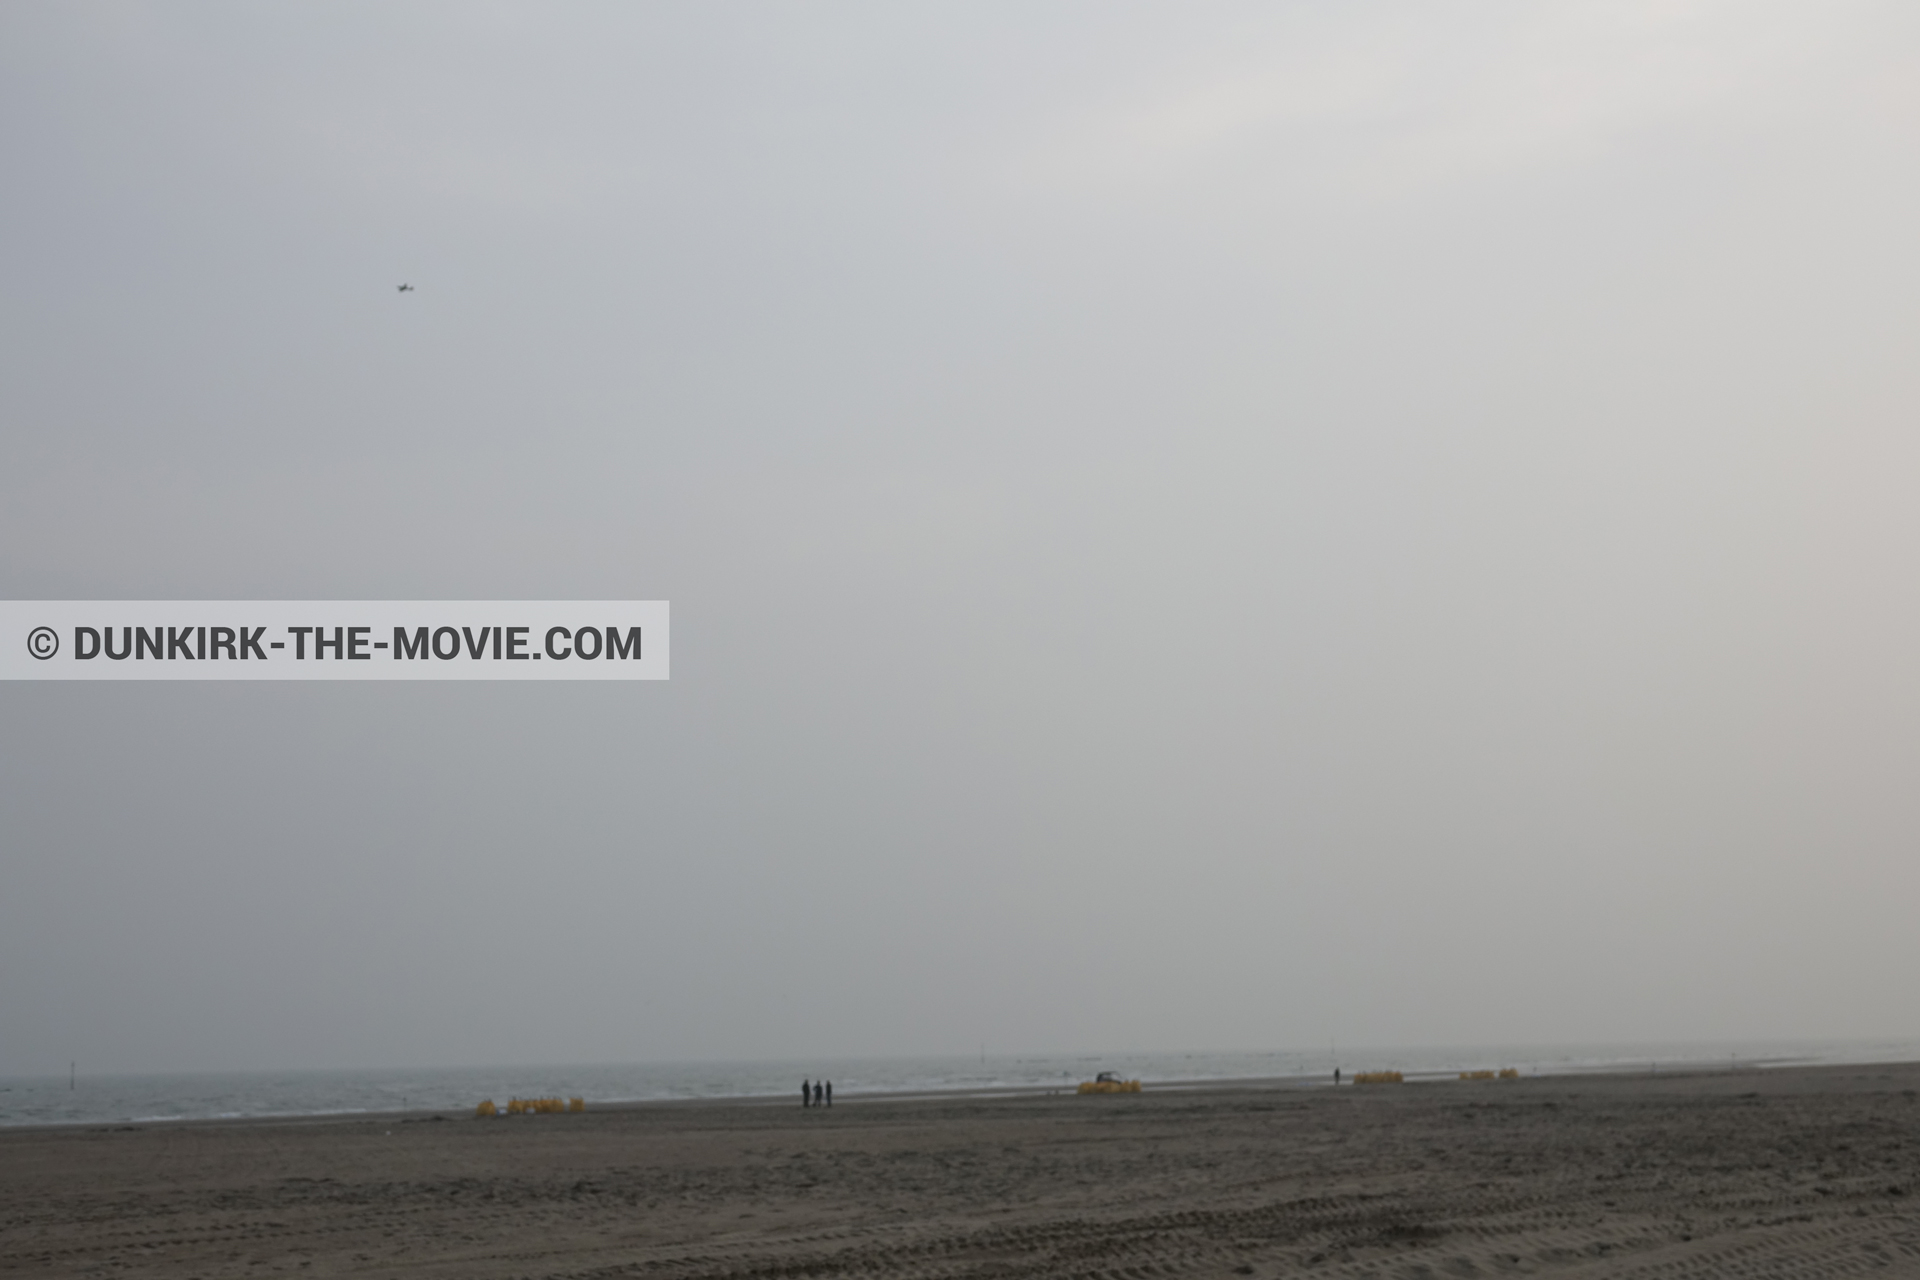 Picture with plane, grey sky, beach,  from behind the scene of the Dunkirk movie by Nolan